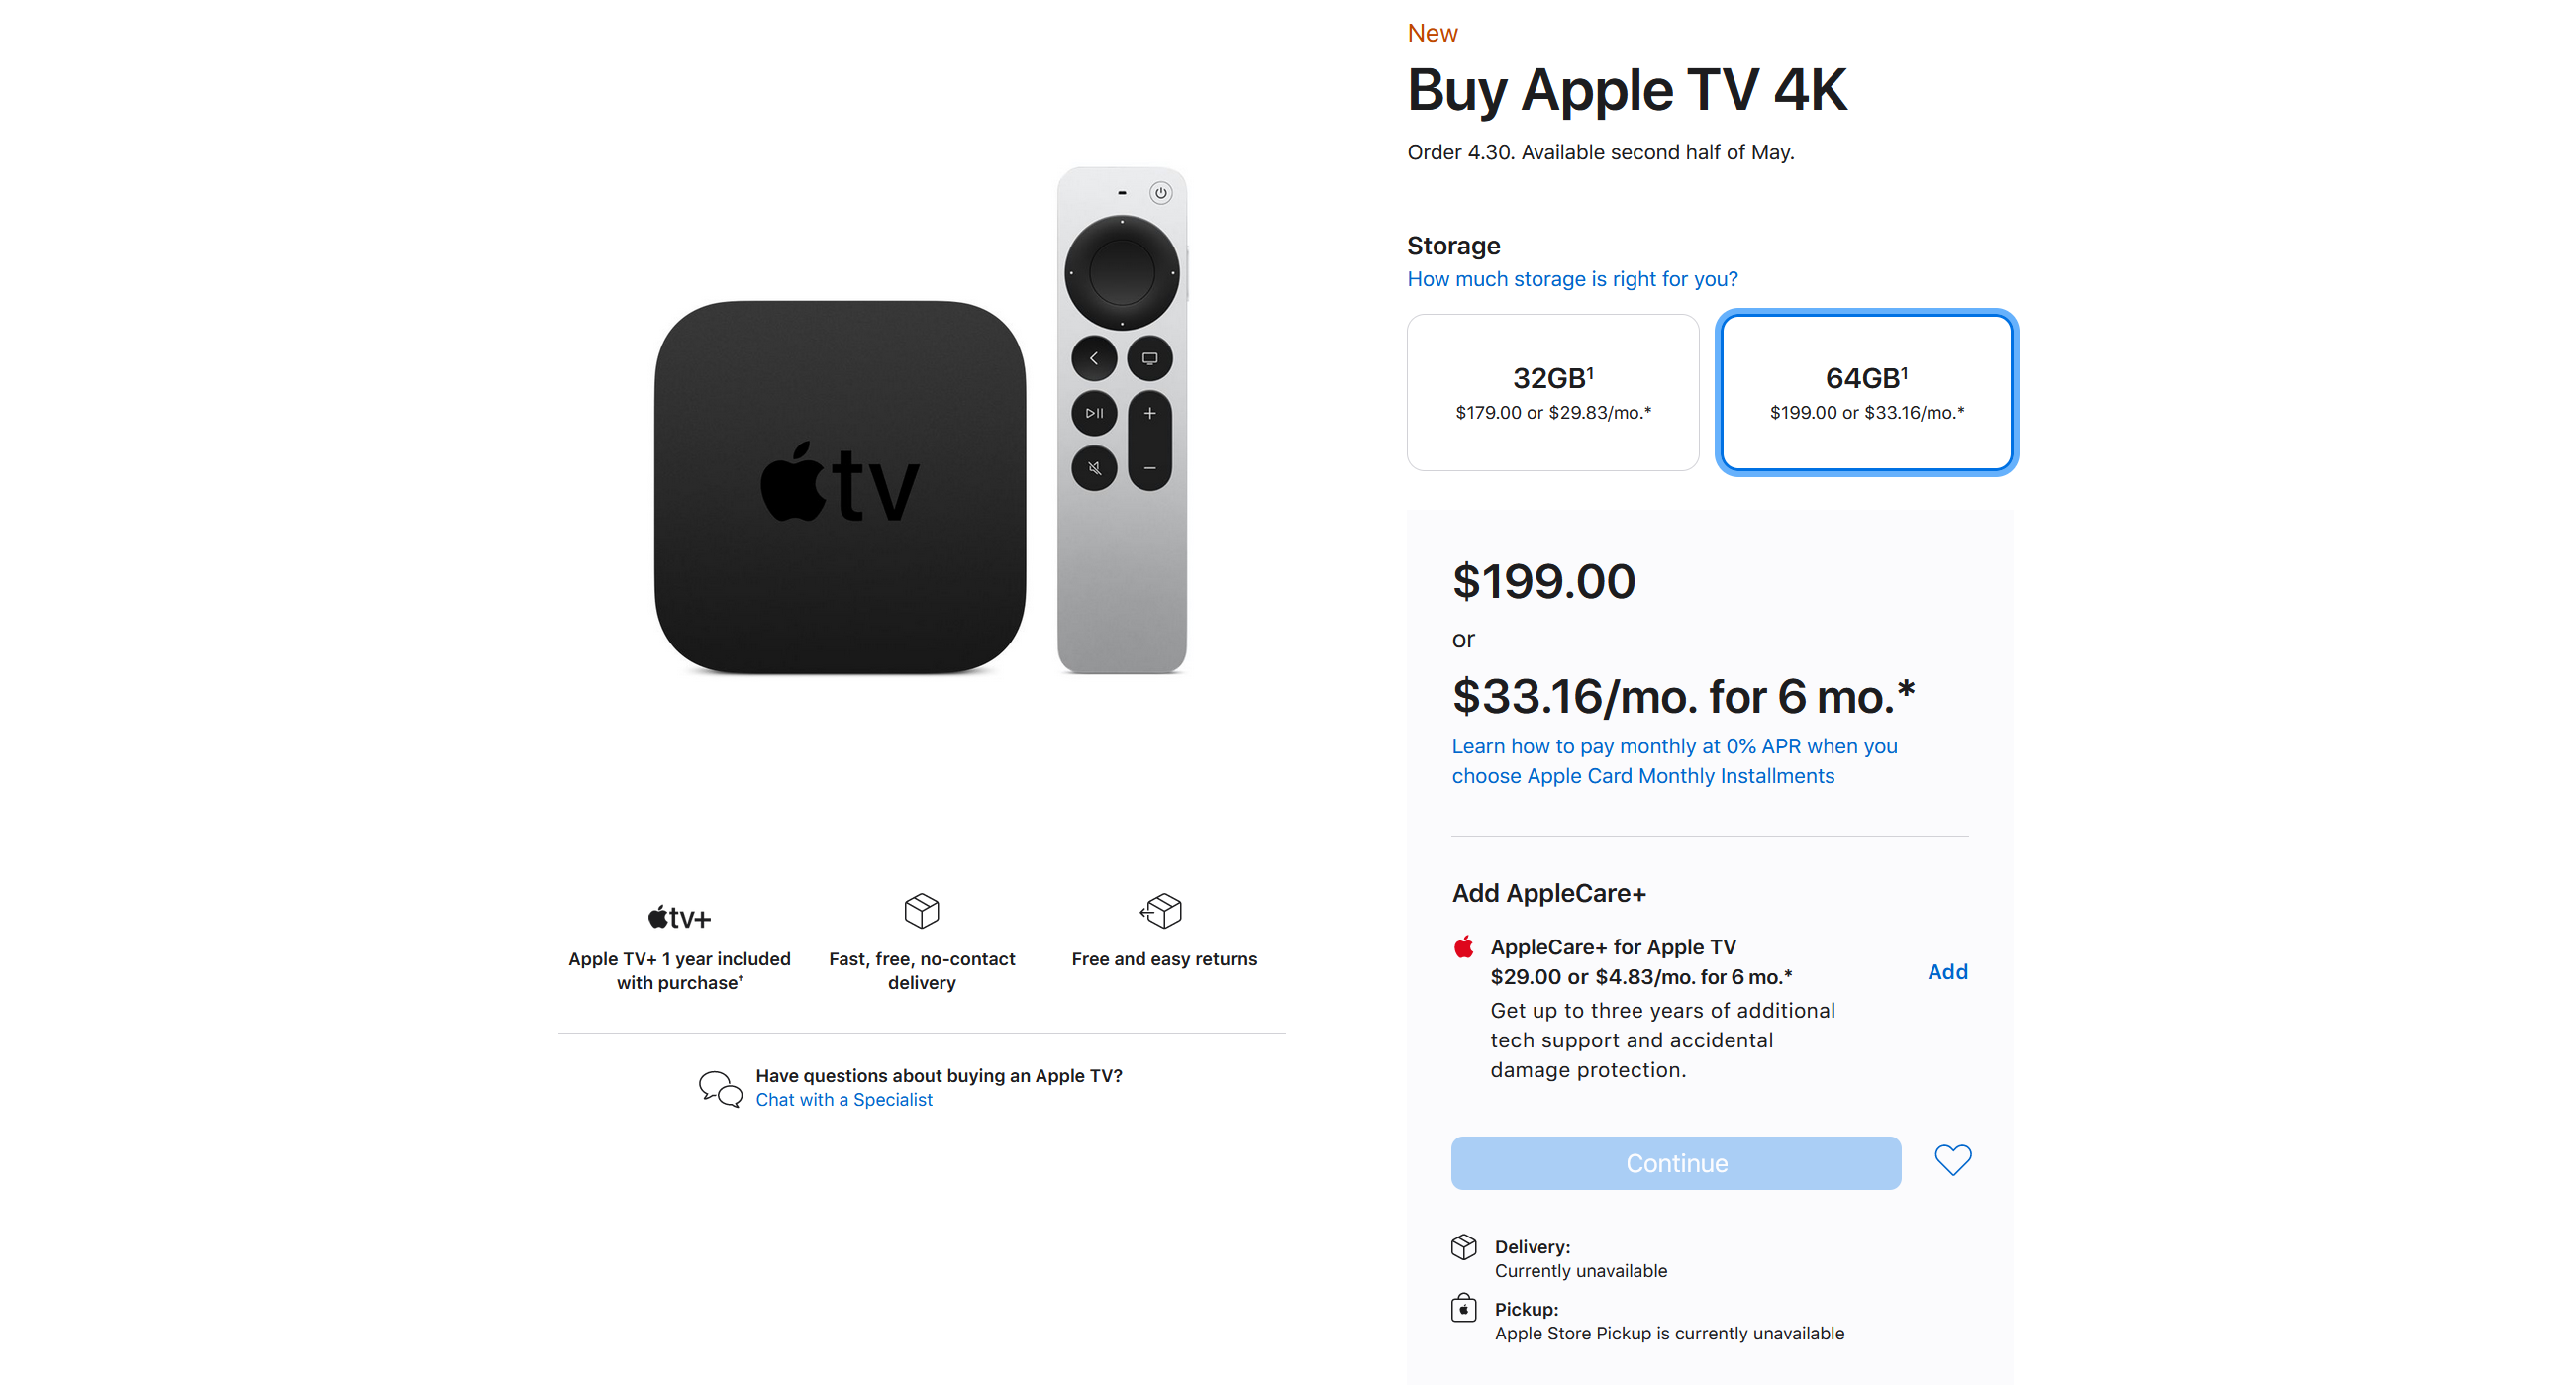 AppleCare appears as an option for Apple TV 4K purchases.